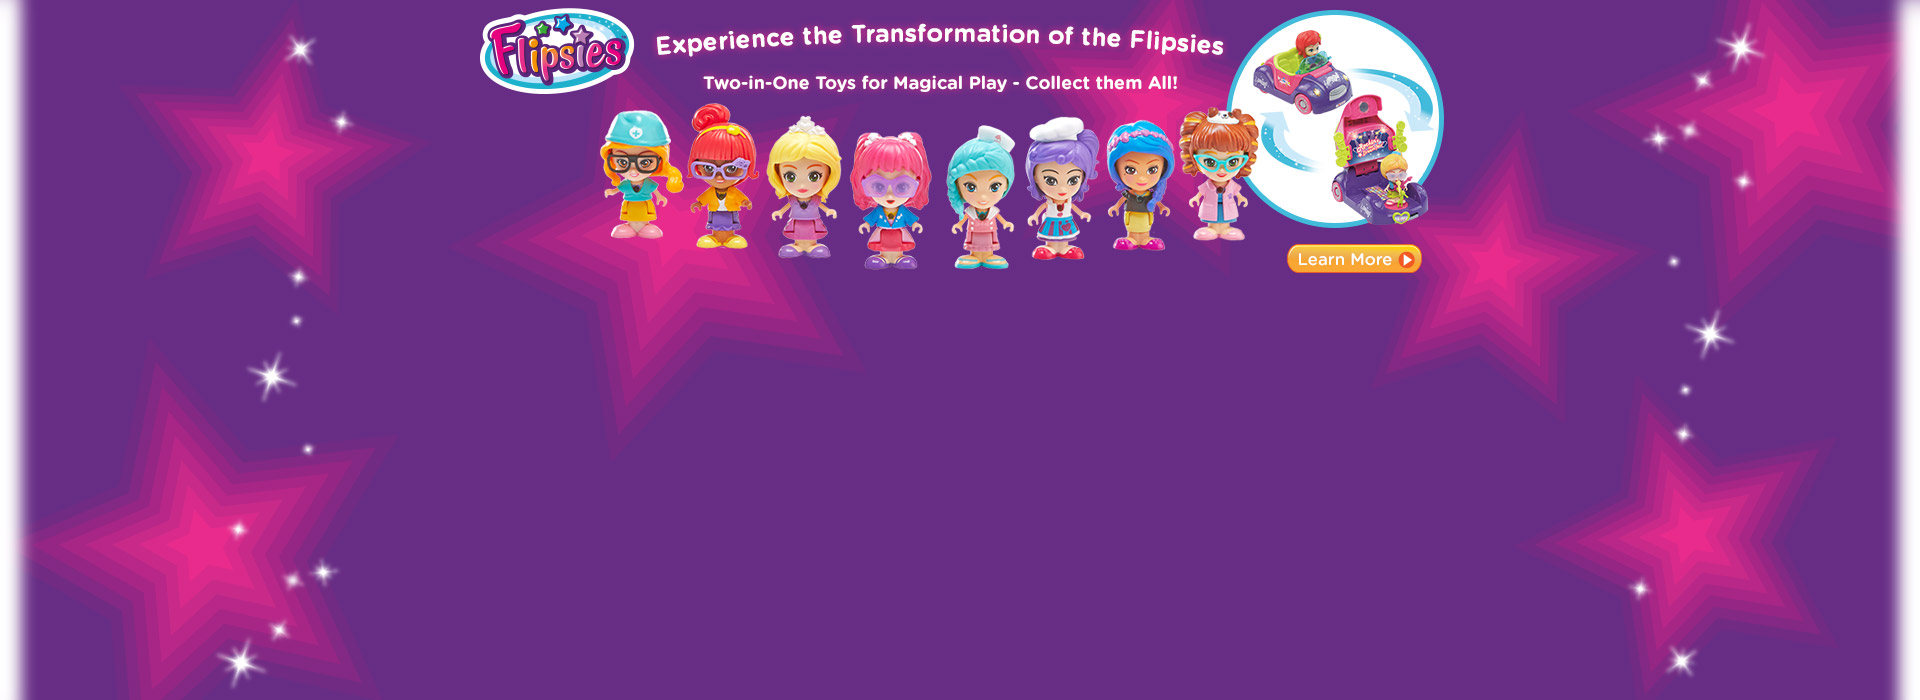 Flipsies - Experience the transformation of the Flipsies